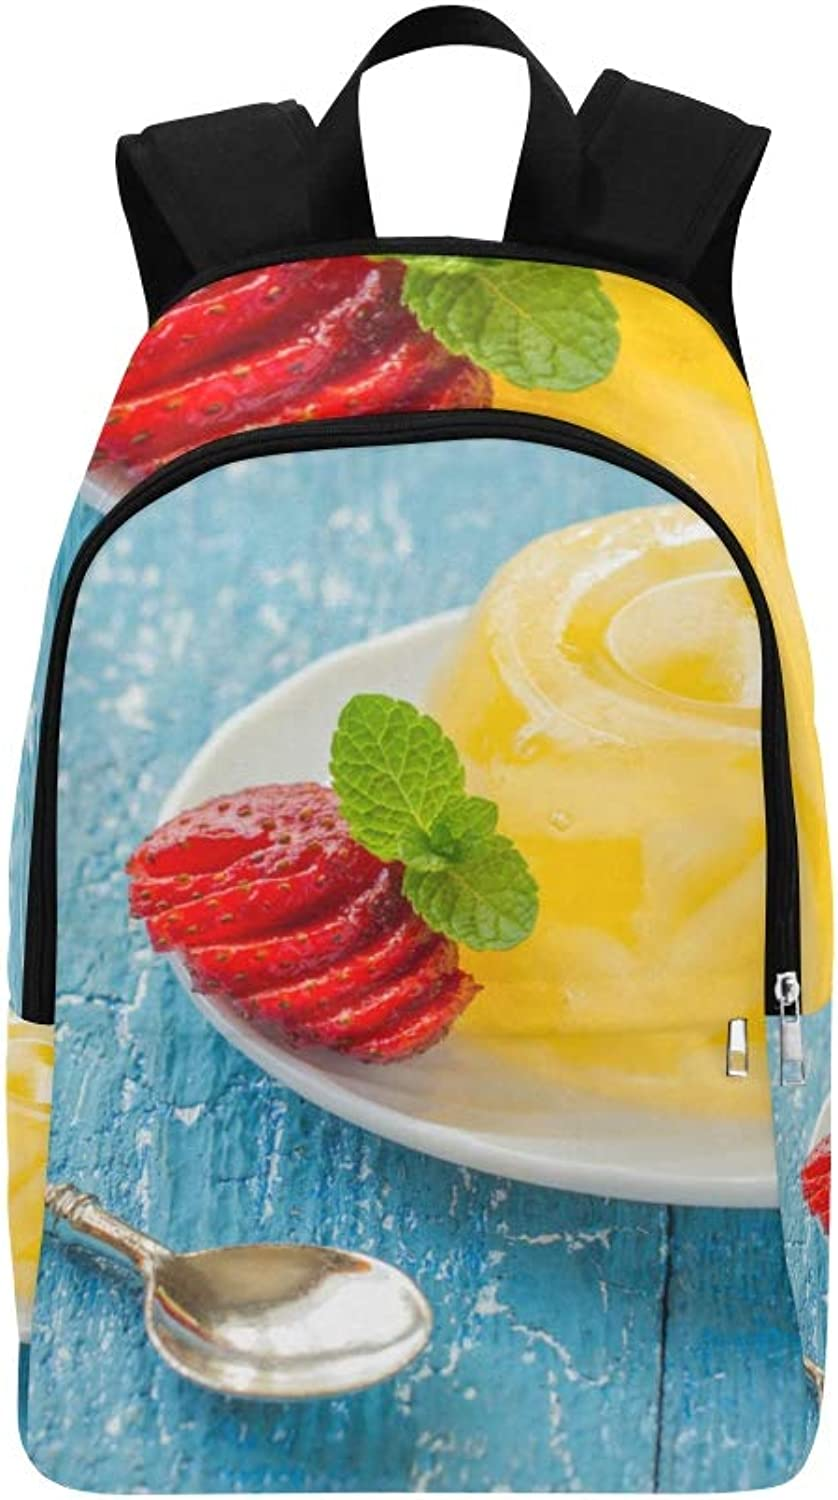 Berry Fruit Jelly with Fresh Fruit Casual Daypack Travel Bag College School Backpack for Mens and Women